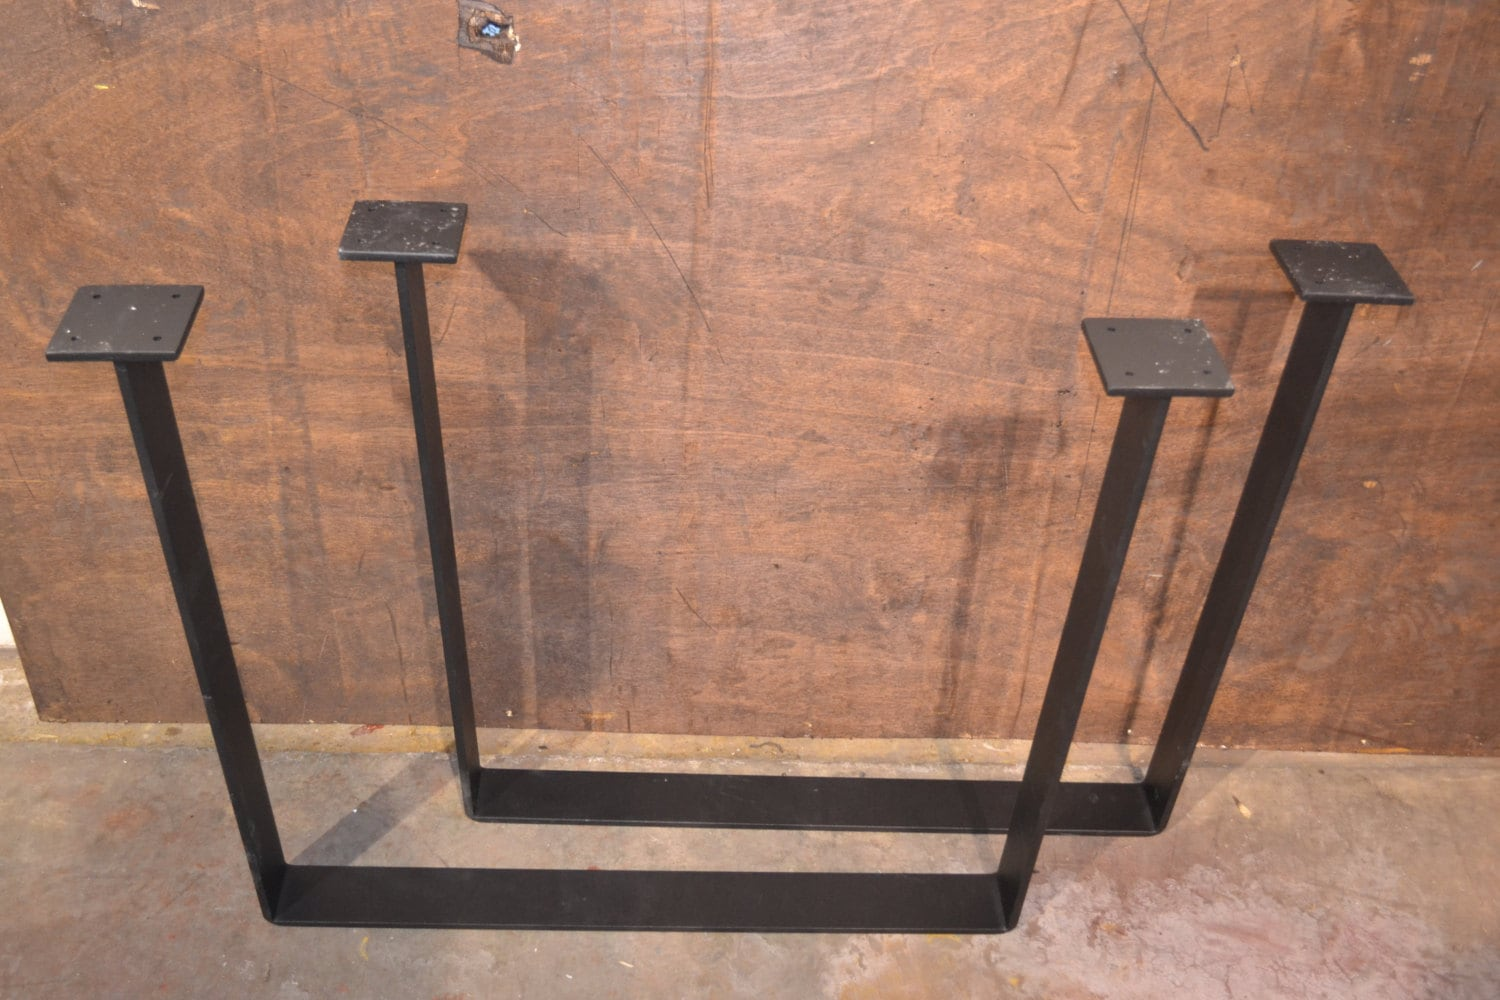 Bent Steel Industrial Table Legs Any Size Amp Color